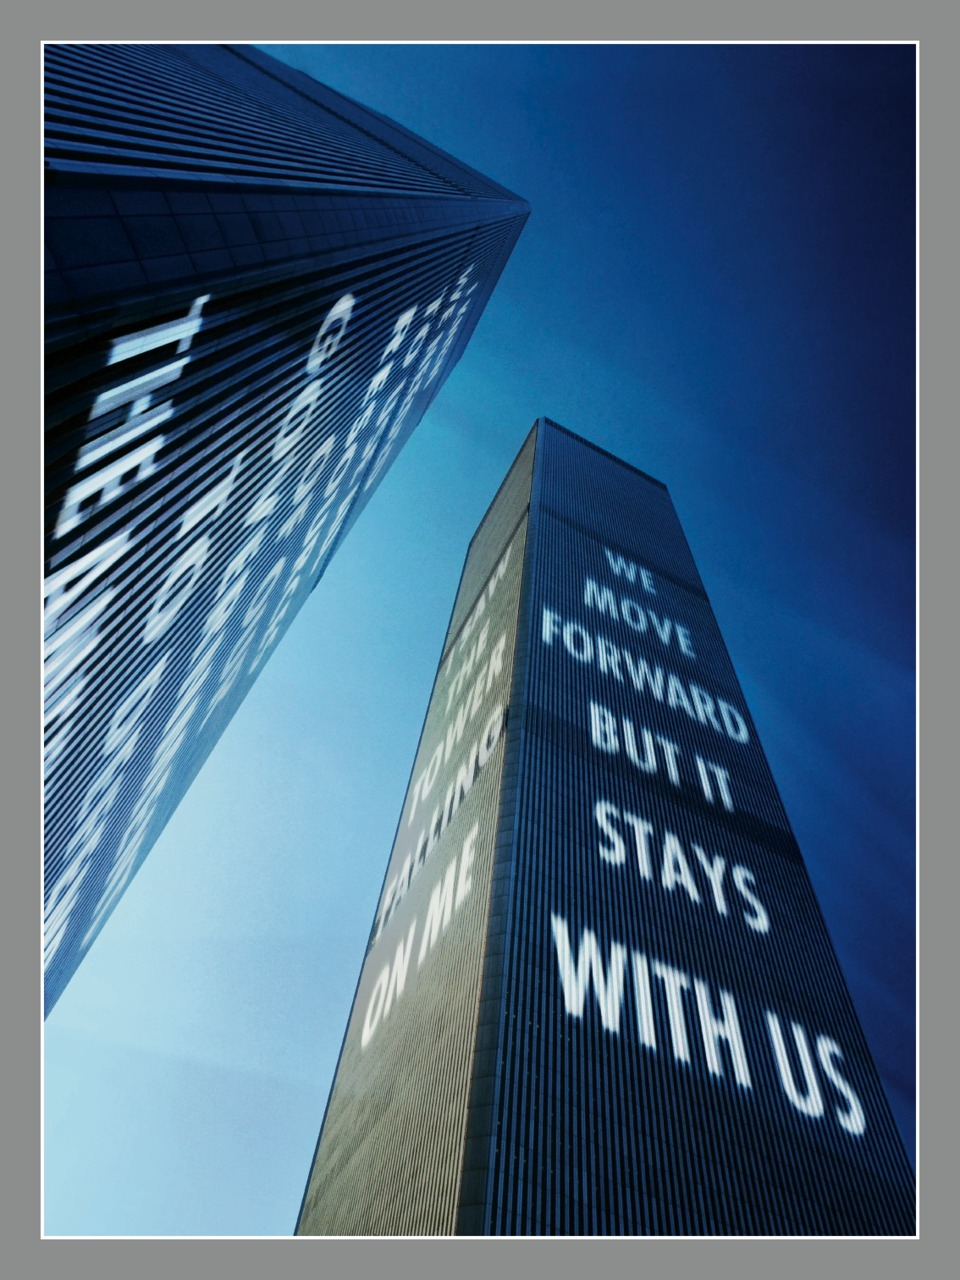 "Via  timemagazine :     ""We move forward but it stays with us."" These aren't Jenny Holzer's words, but she's the artist who molded them into a visual titan. This photo-illustration, now the back cover of our ""Beyond 9/11"" Special Commemorative Issue, is Holzer's rendering of the significance of 9/11, done in her signature style. What we see are these words transposed onto towers that fell 10 years ago.    The phrasing actually belongs to Howard Lutnik, the CEO of Cantor Fitzgerald, the company whose offices took up the 101 to the 105 floors of the World Trade Center's north tower. Lutnik took the morning off from work on Sept. 11, 2001 to take his son Kyle to his first day of kindergarten, and  was interviewed  about that day (along with  his son , now a freshman in high school) as a part of our ""Beyond 9/11"" project.    After graduating from the Rhode Island School of Design in the late 1970s, Holzer began coining her artistic trademark by writing short slogans in public places. ""If you want to reach a general audience,""  she told TIME  in 1990, ""it's not art issues that are going to compel them to stop on their way to lunch, it has to be life issues."" She went on to project her ""truisms"" onto famous cityscapes all over the world.    ""Beyond 9/11"" began as a series of portraits of the 40 men and women whose lives are forever tethered to that day, but we quickly realized that their words held as much power as their images.  Executive editor Radhika Jones says Holzer's work is ""a beautiful marriage"" between the artistic vision of this issue and the significance of the words behind them. Now, her 9/11 back cover image, wrapped in silver, sits next to Julian LaVerdiere and Paul Myoda's ""Tribute in Light Years,"" a tribute to the buildings that are lost to us now."